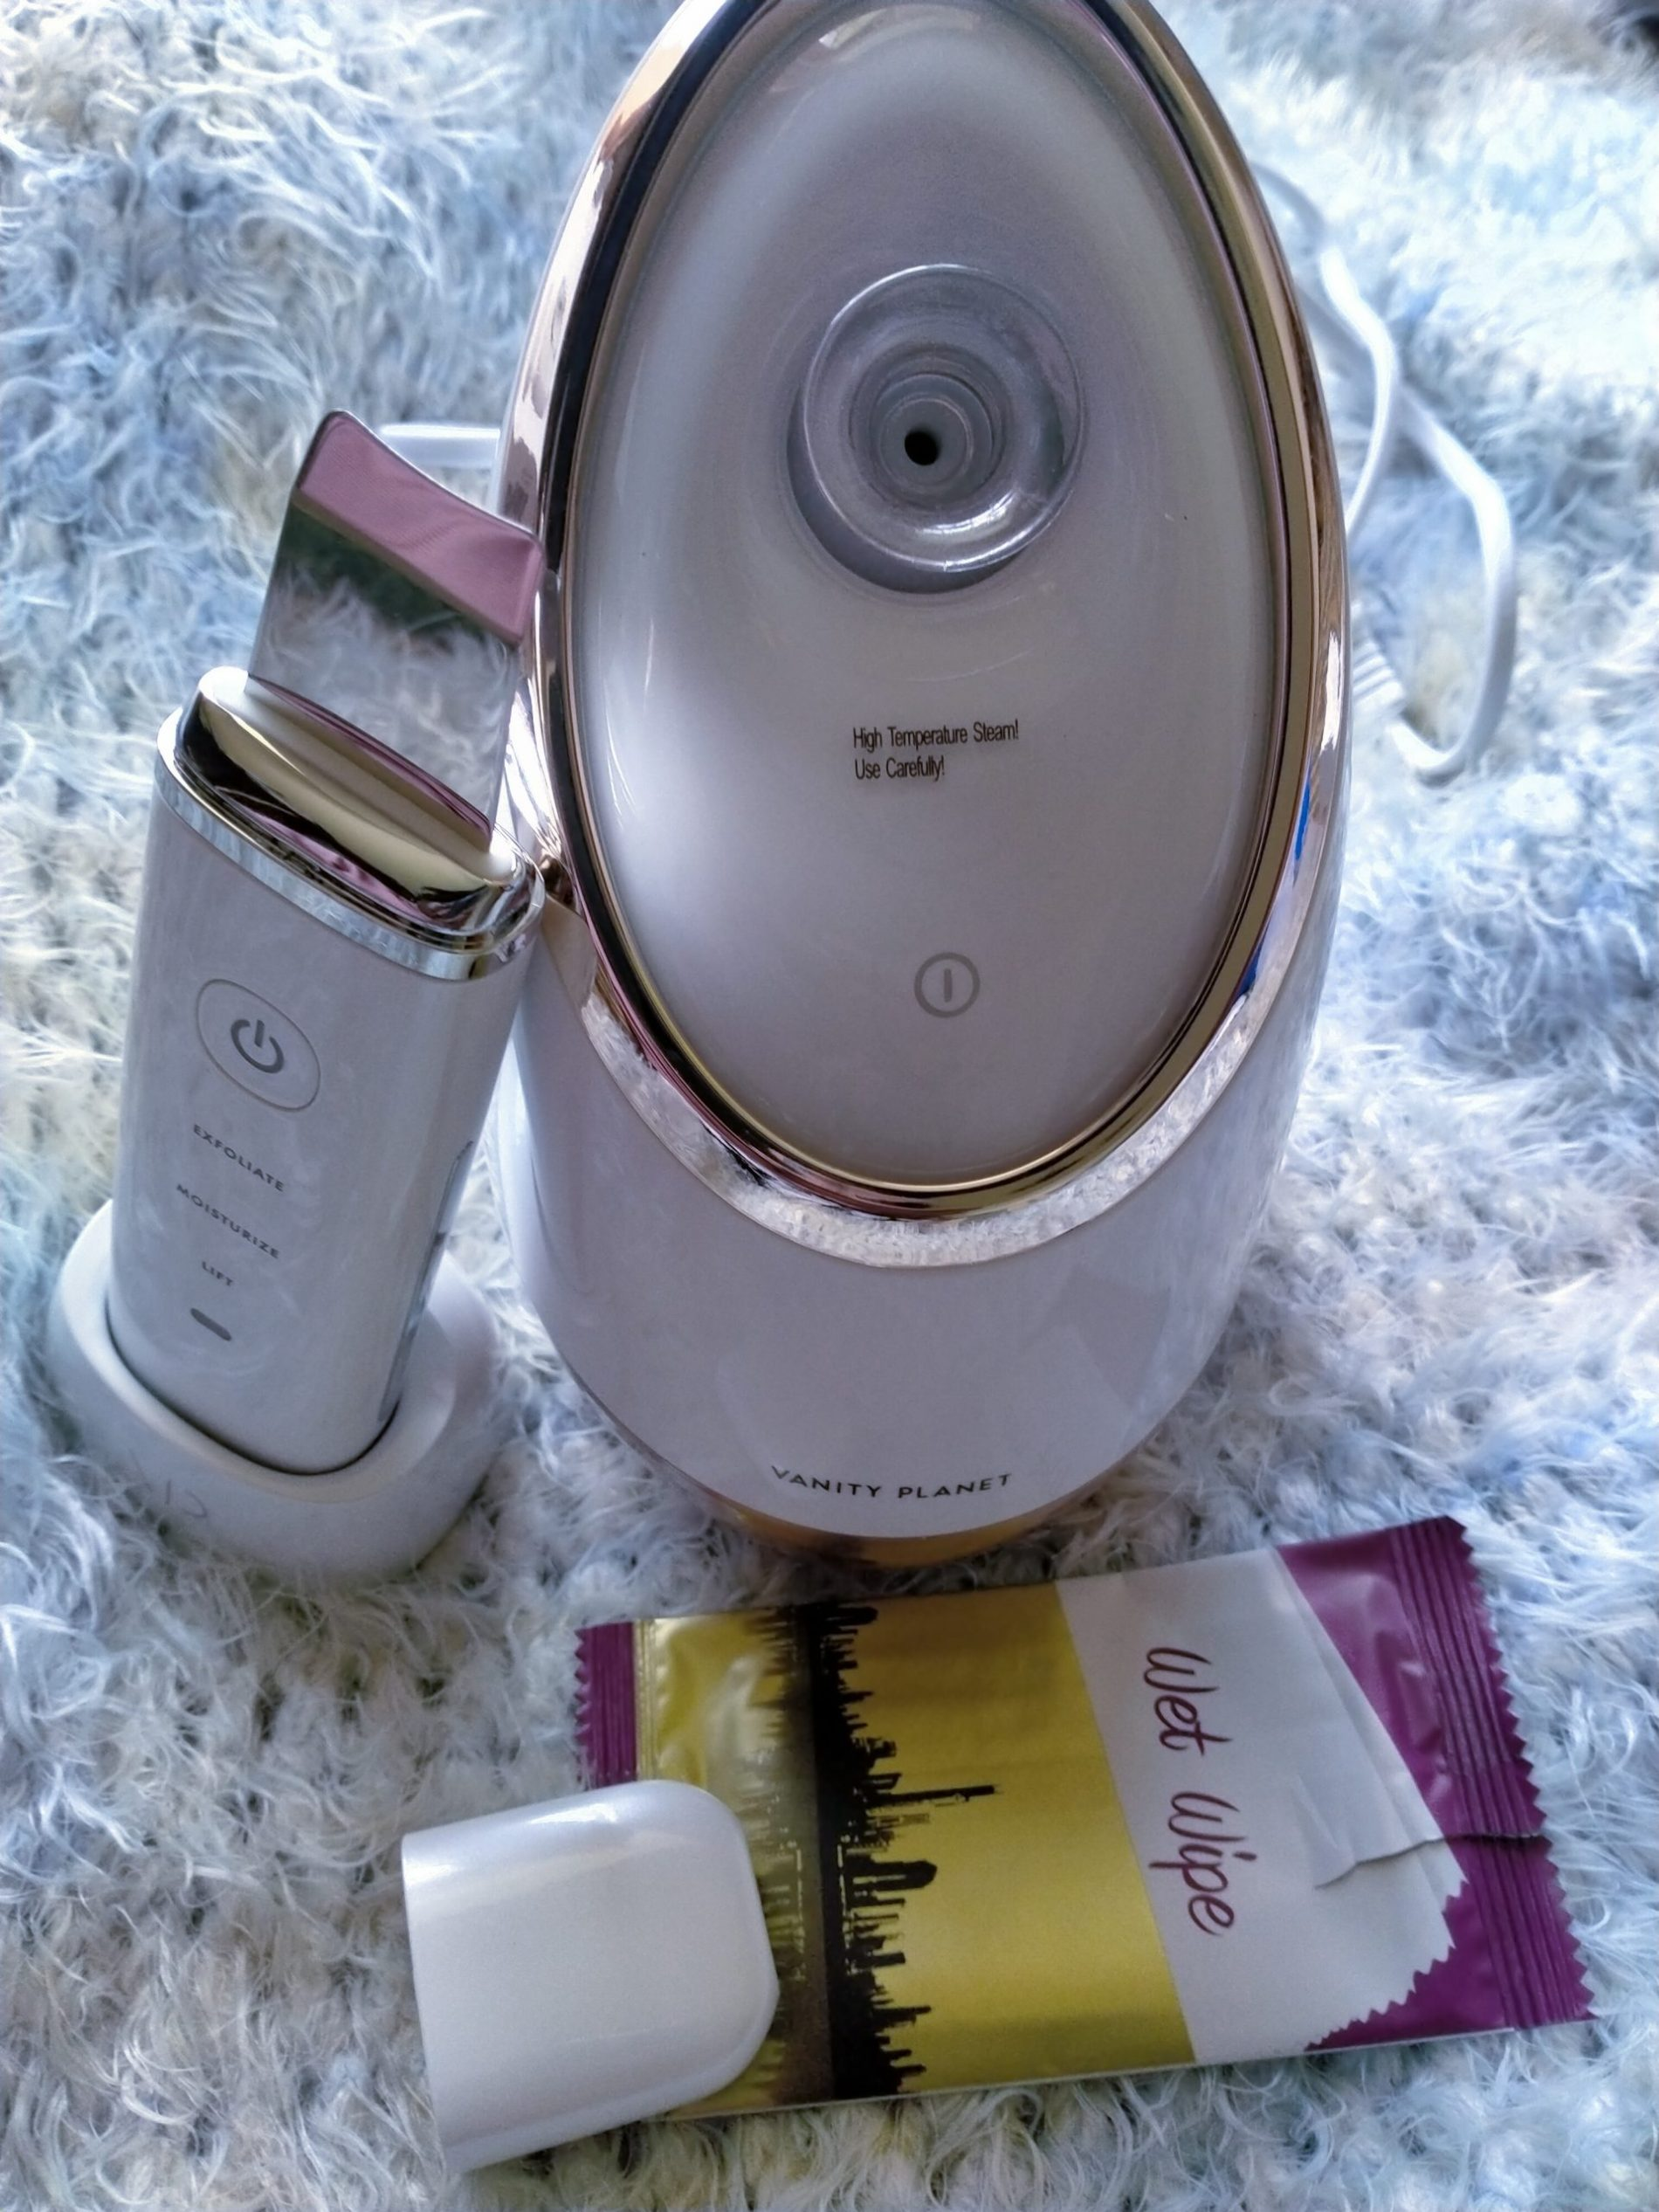 Do your Steam your Face? Try Vanity Planet's Iconic Aera Facial Steamer